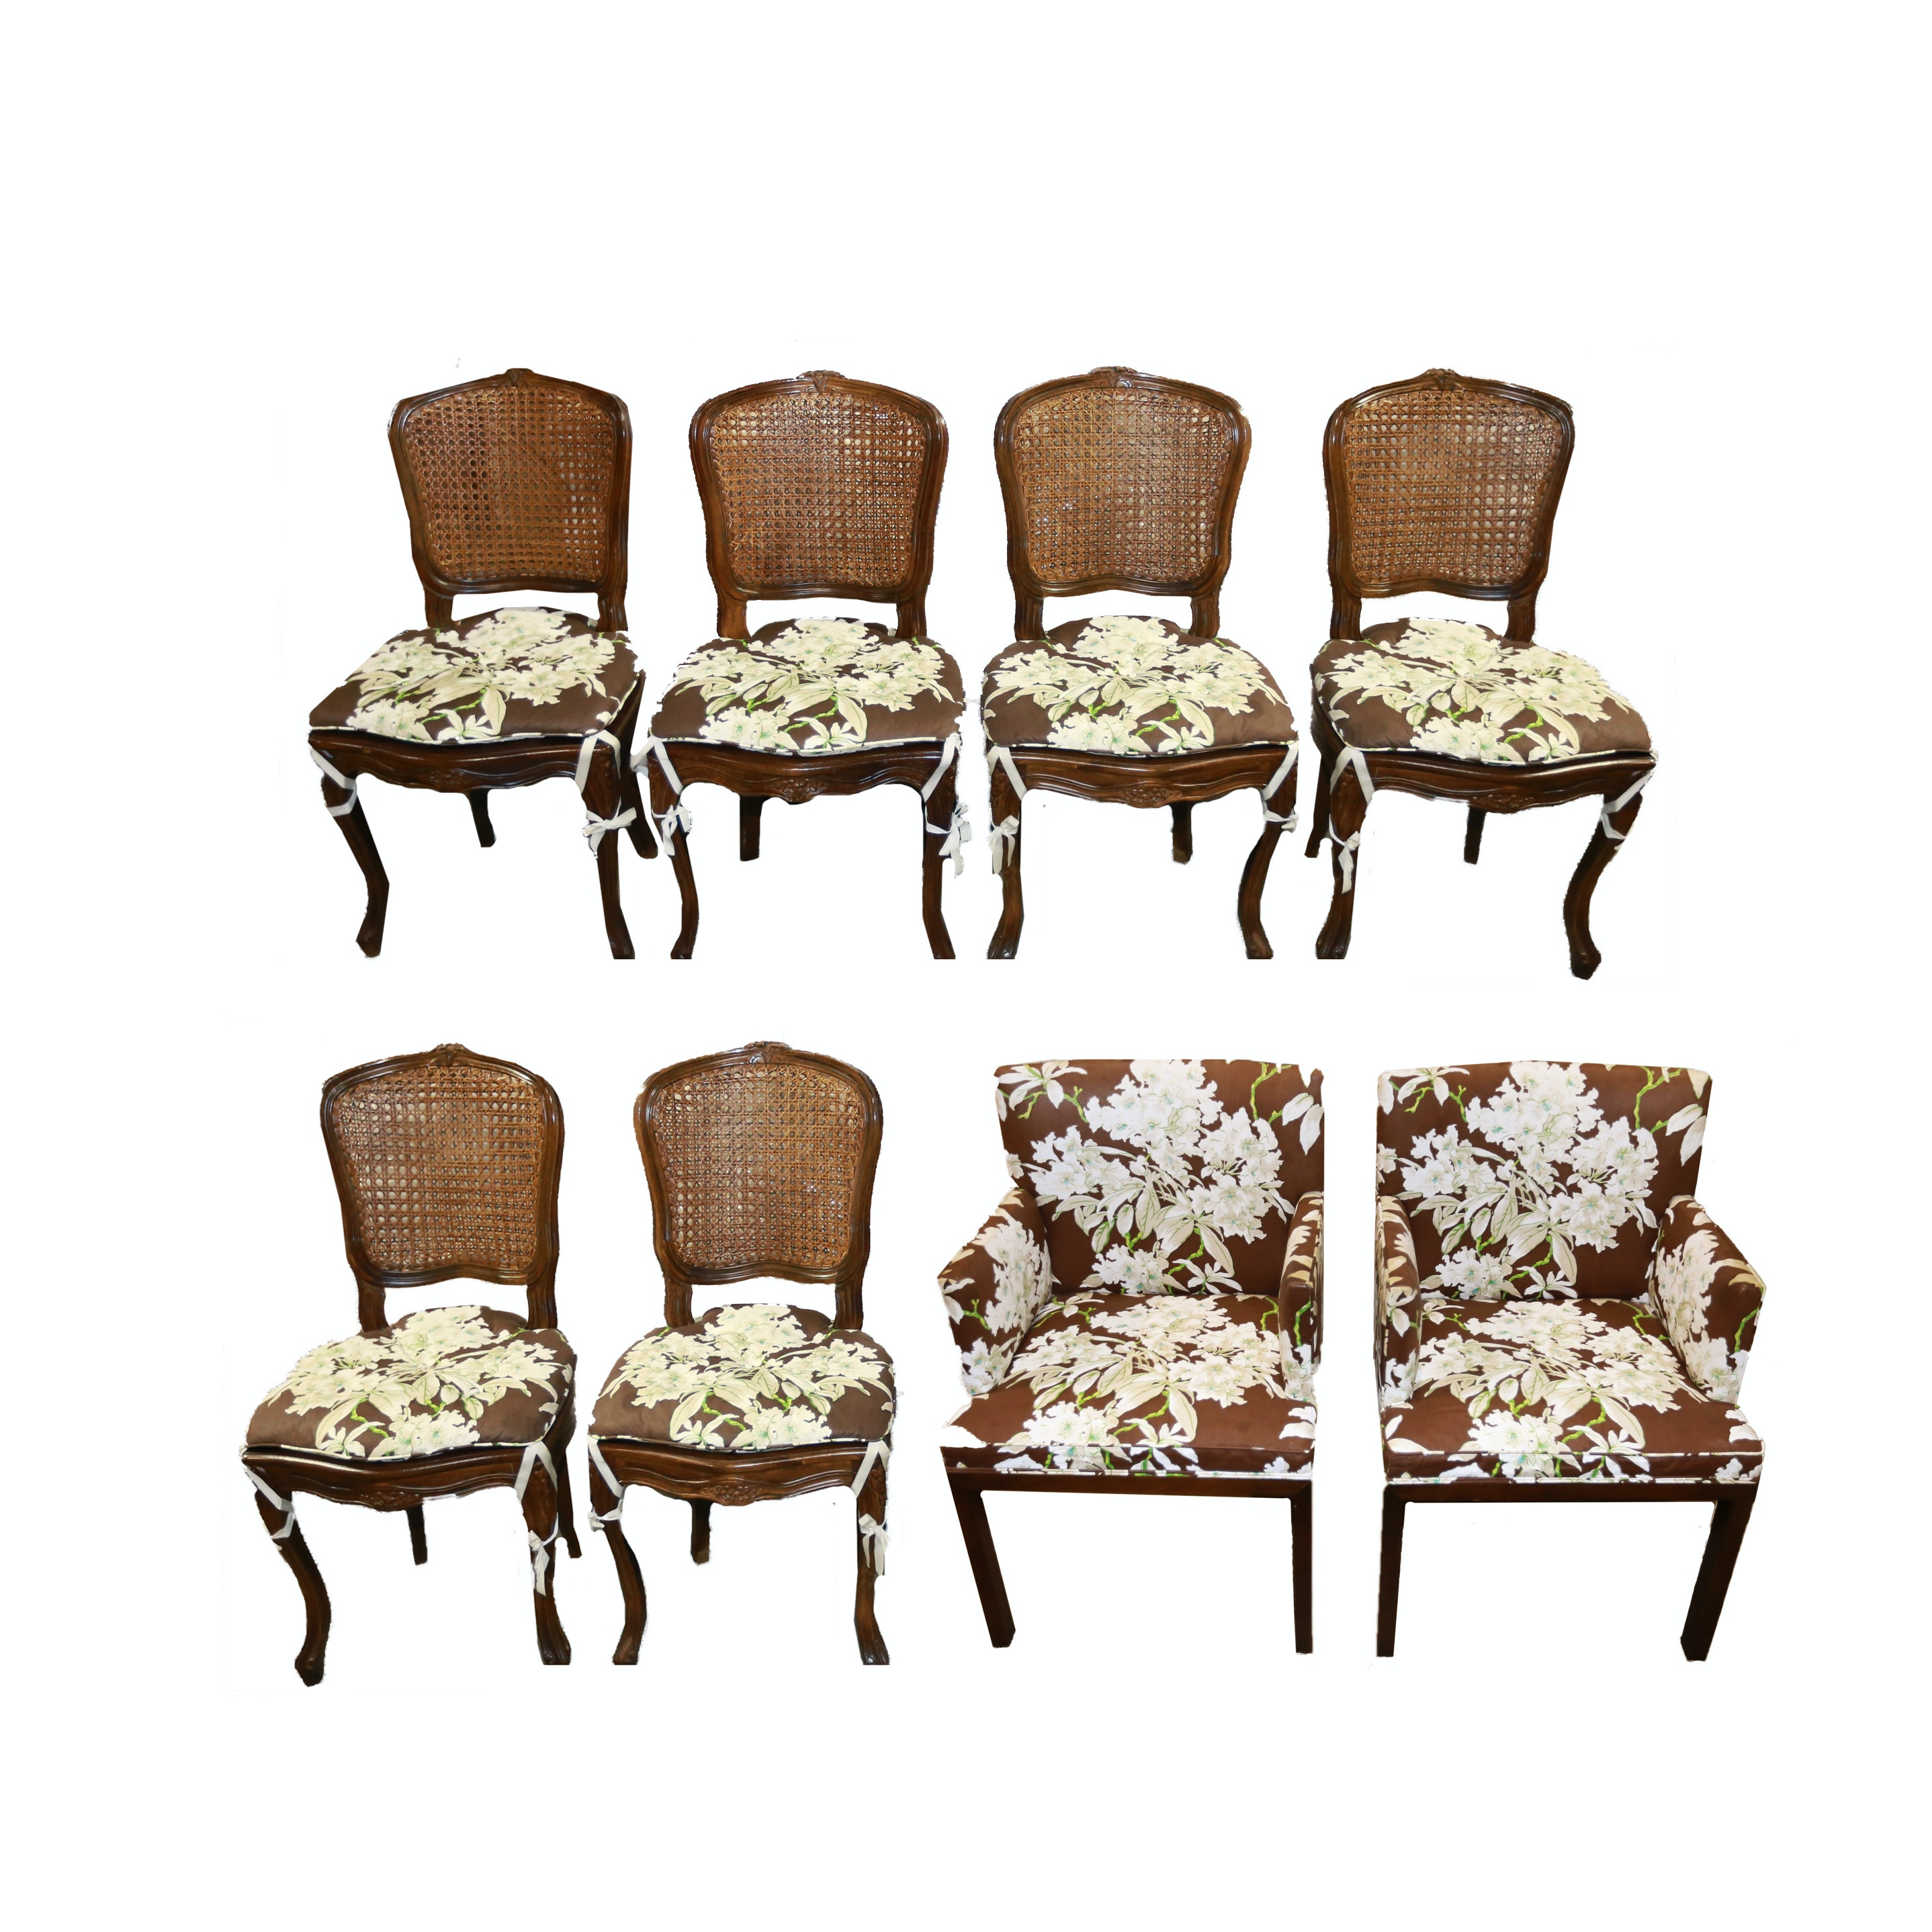 Wooden Floral Motif Chairs